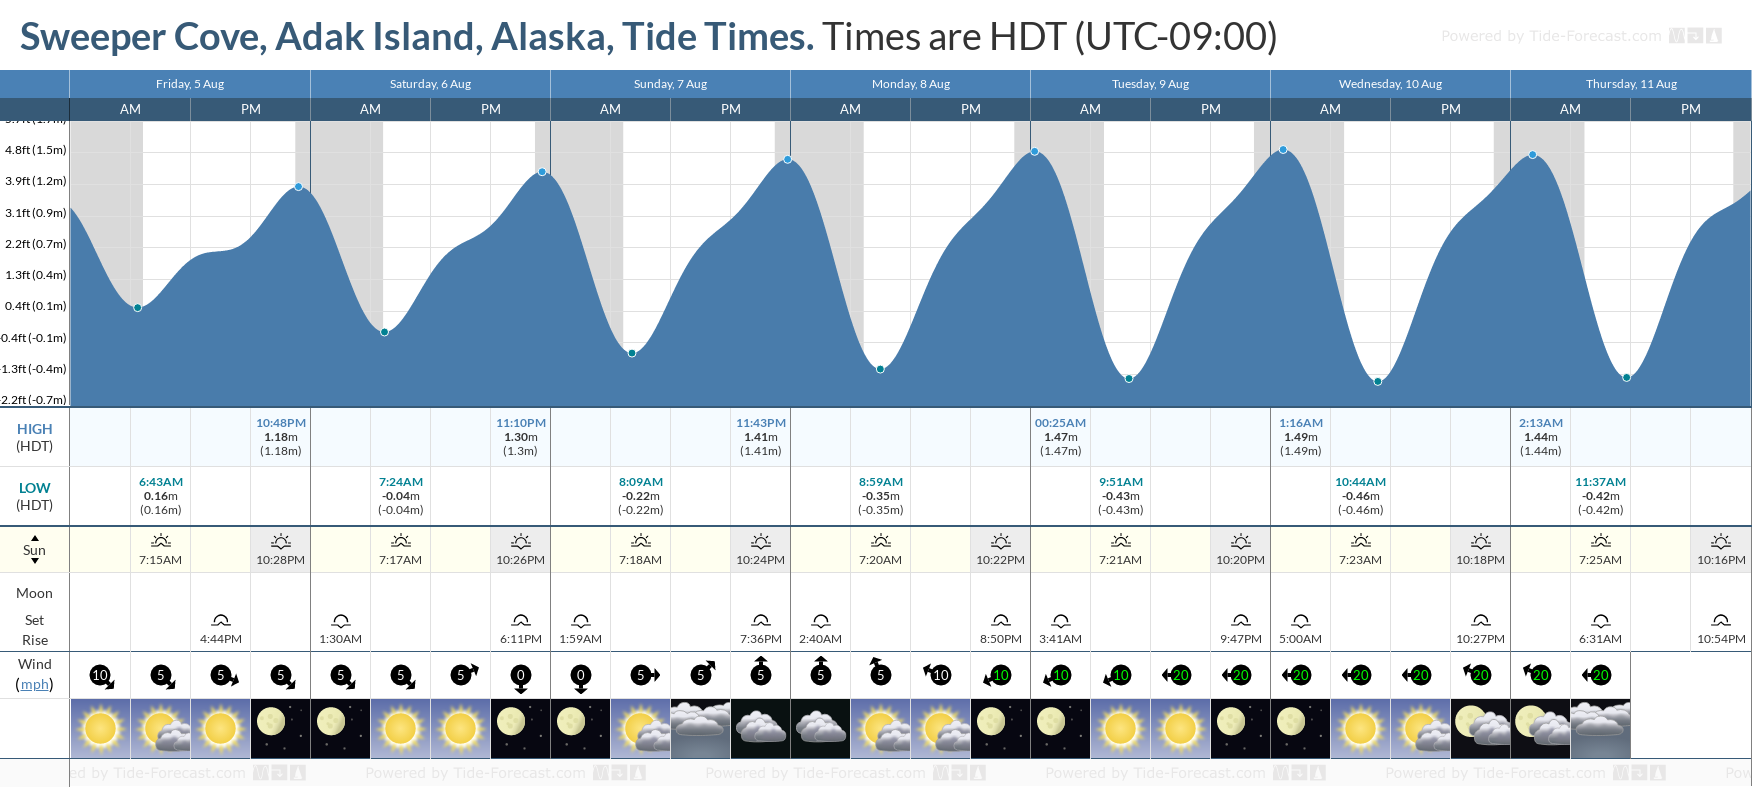 Sweeper Cove, Adak Island, Alaska Tide Chart including high and low tide tide times for the next 7 days